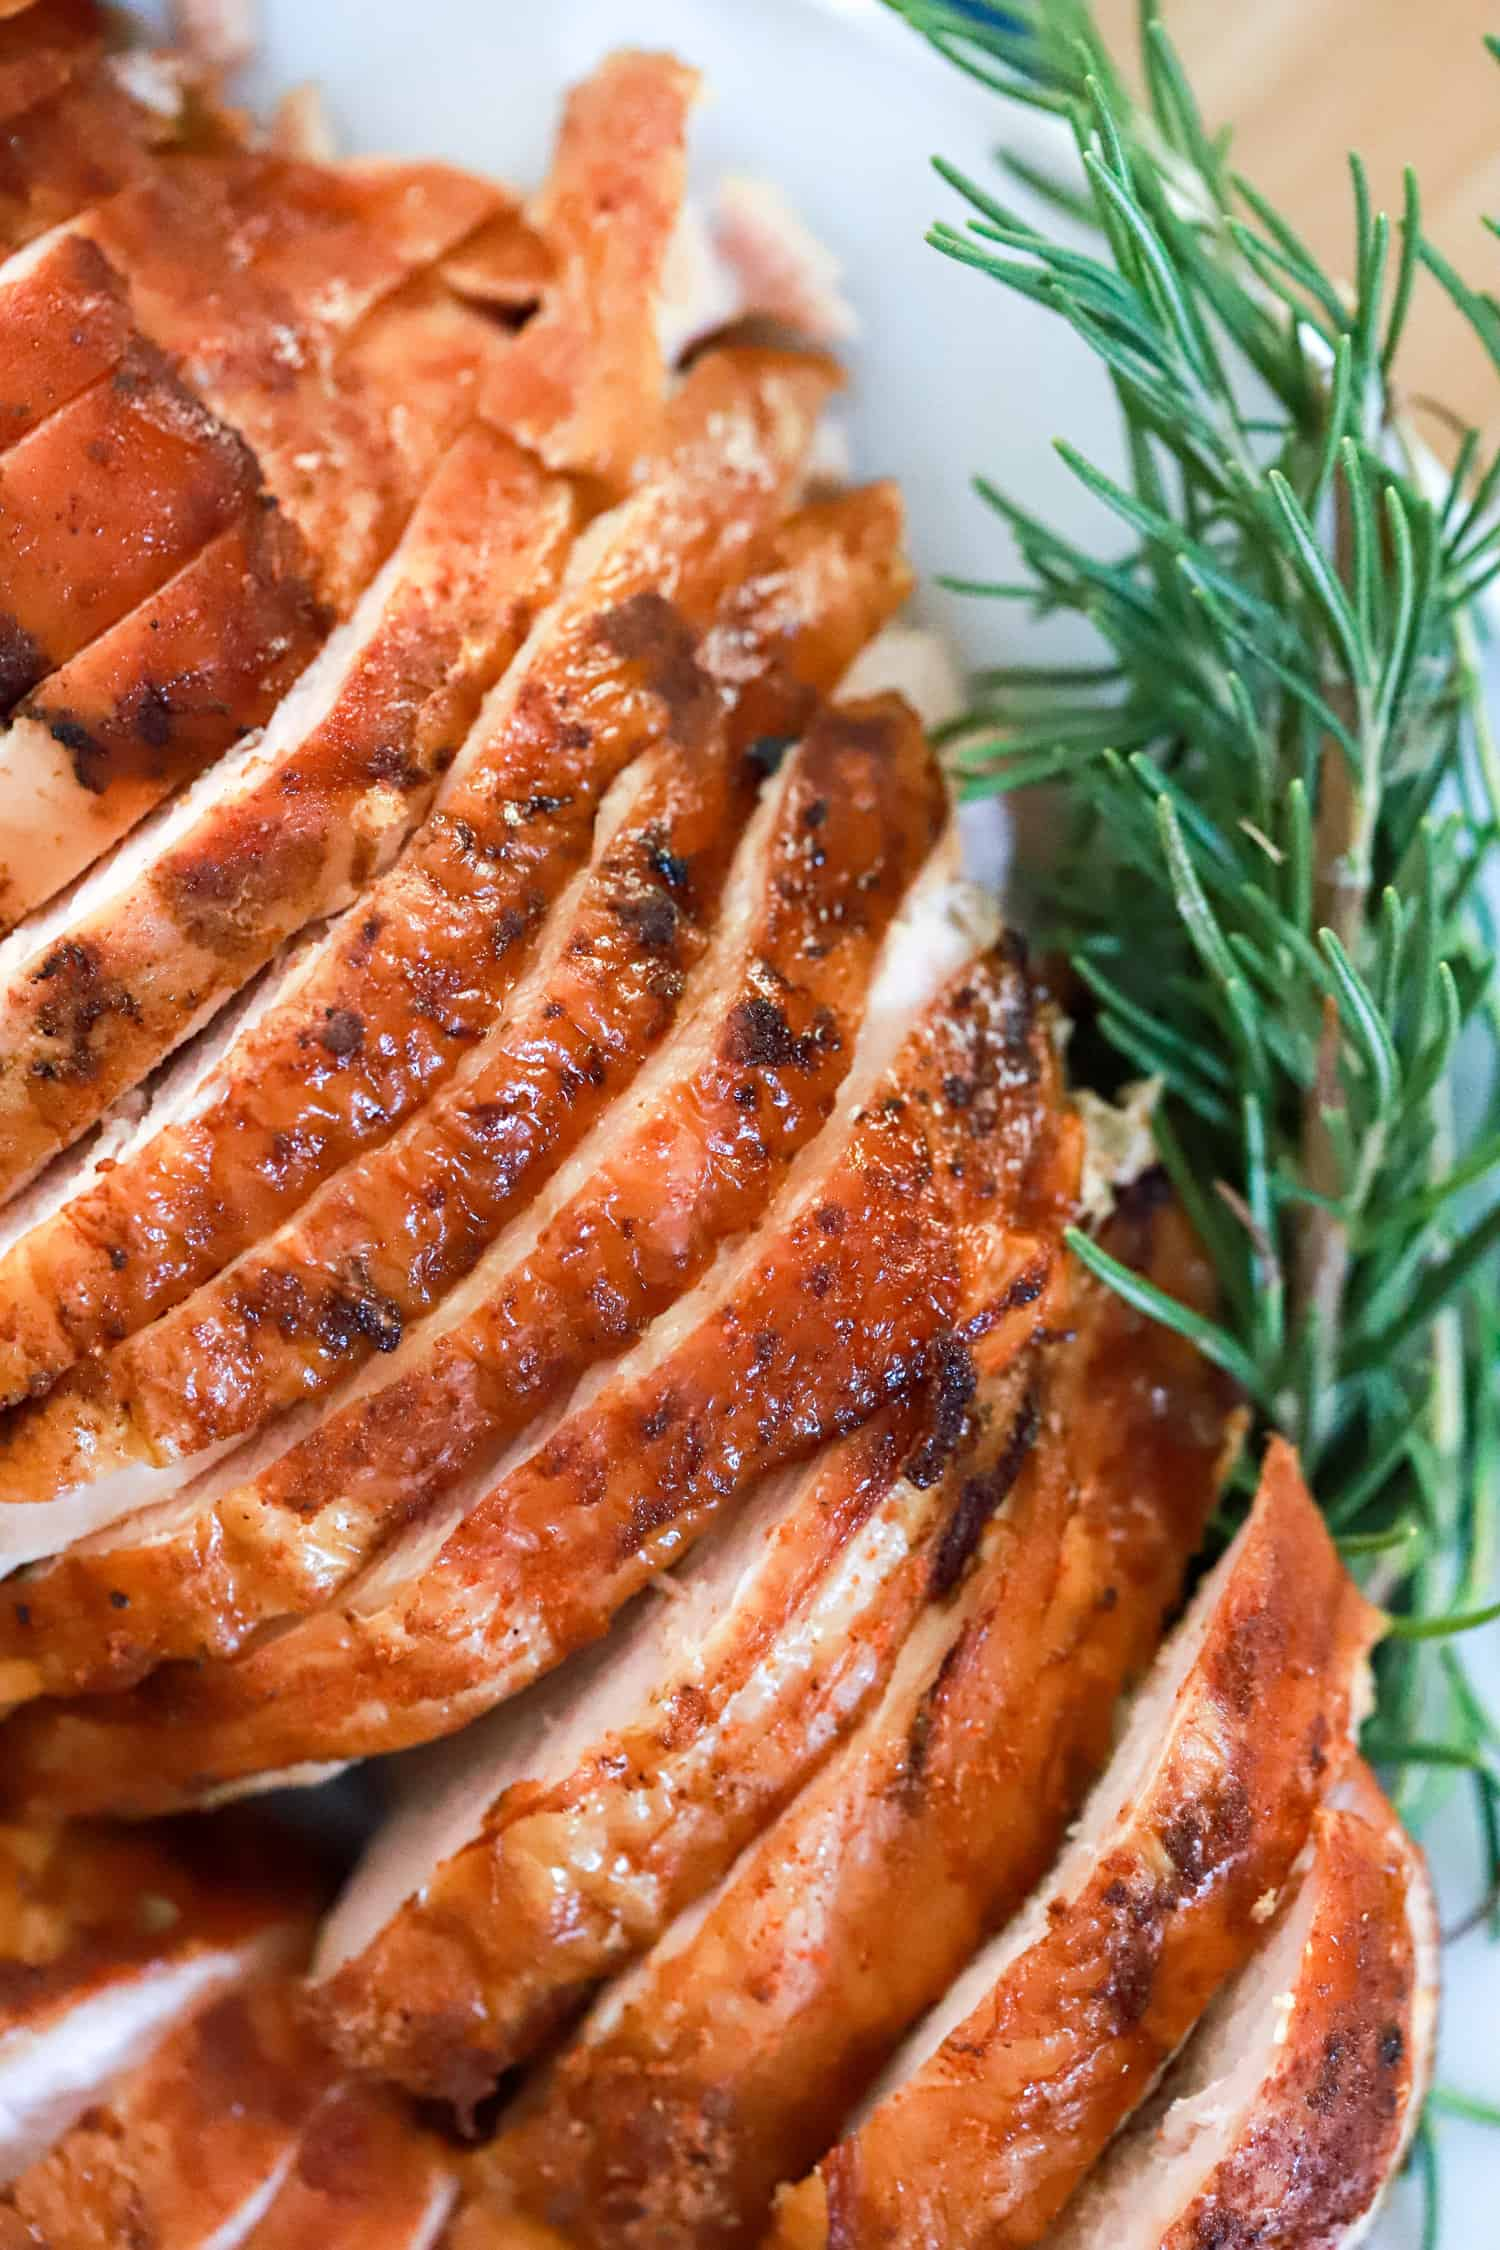 close up of sliced turkey with fresh rosemary sprig on the side.